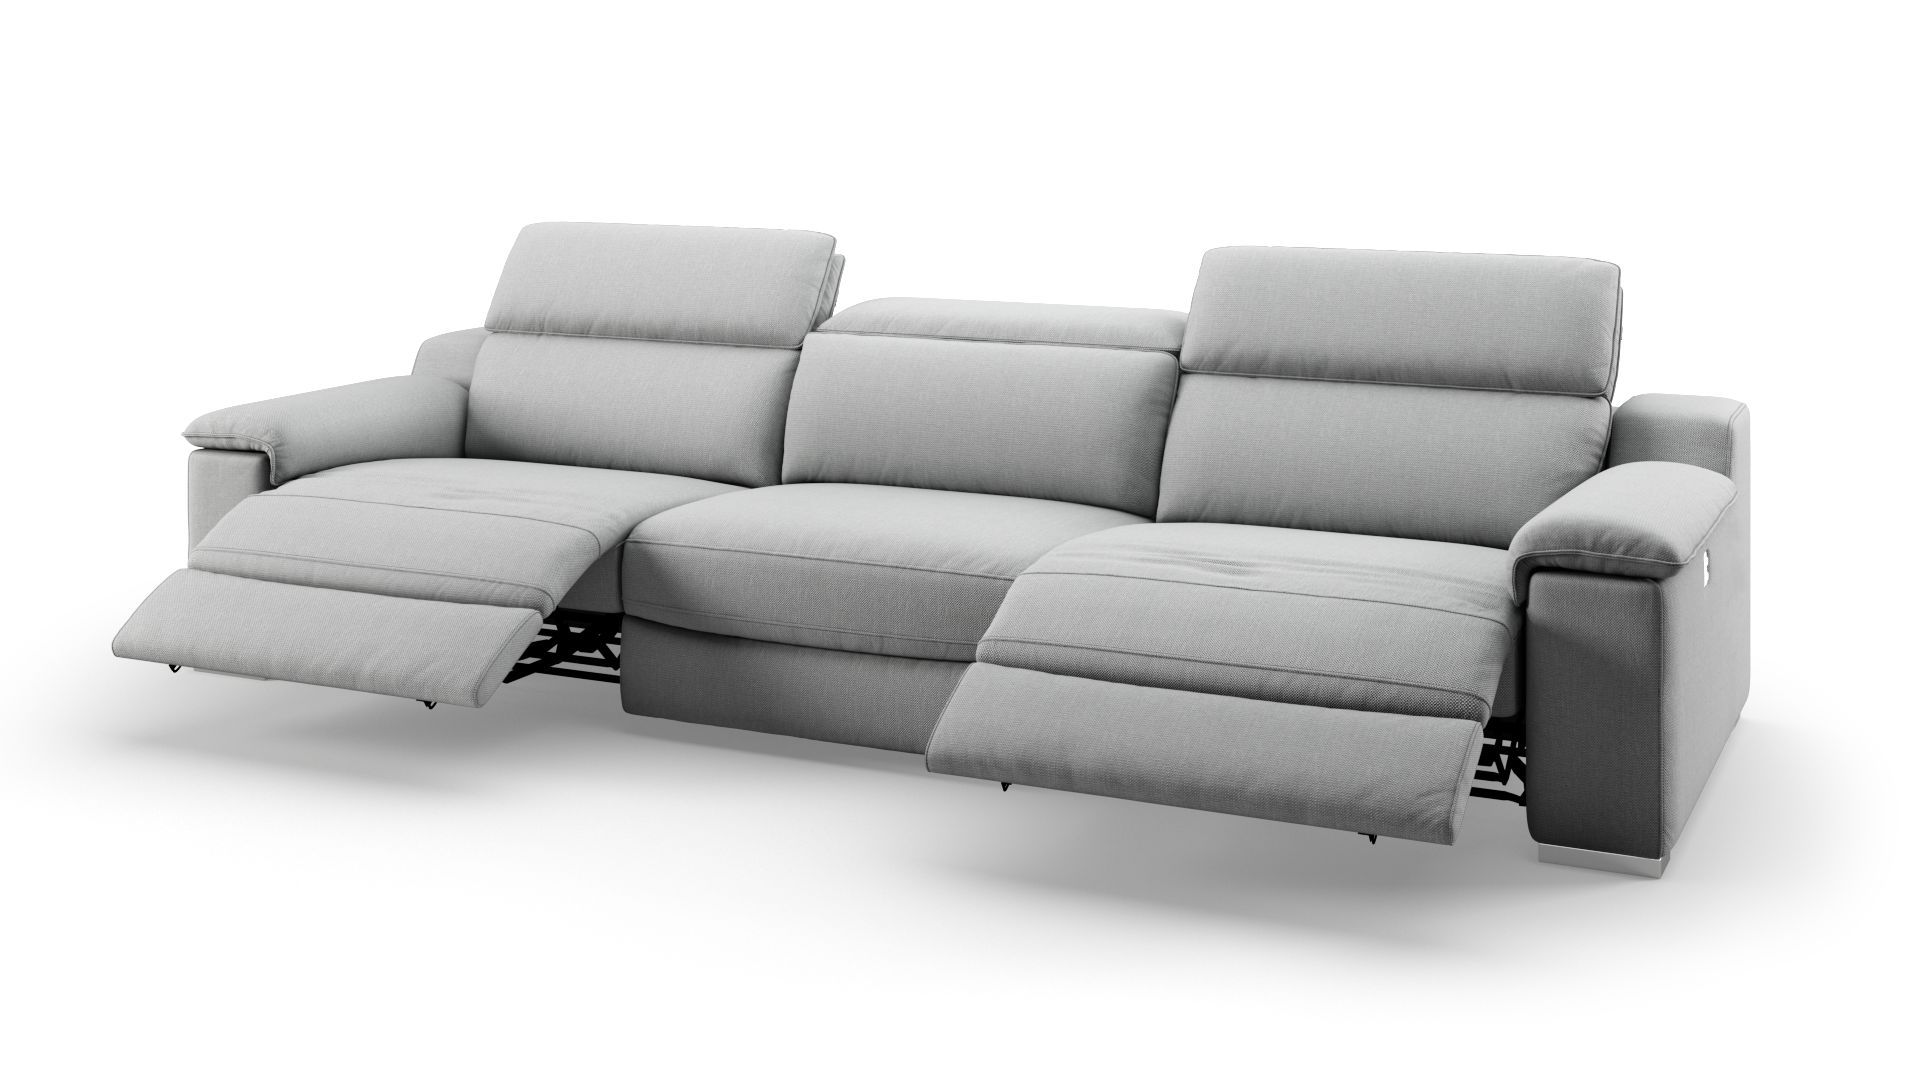 Macello 3 Sitzer Sofa Xxl White Sofa Living Room White Living Room Set Black And White Living Room